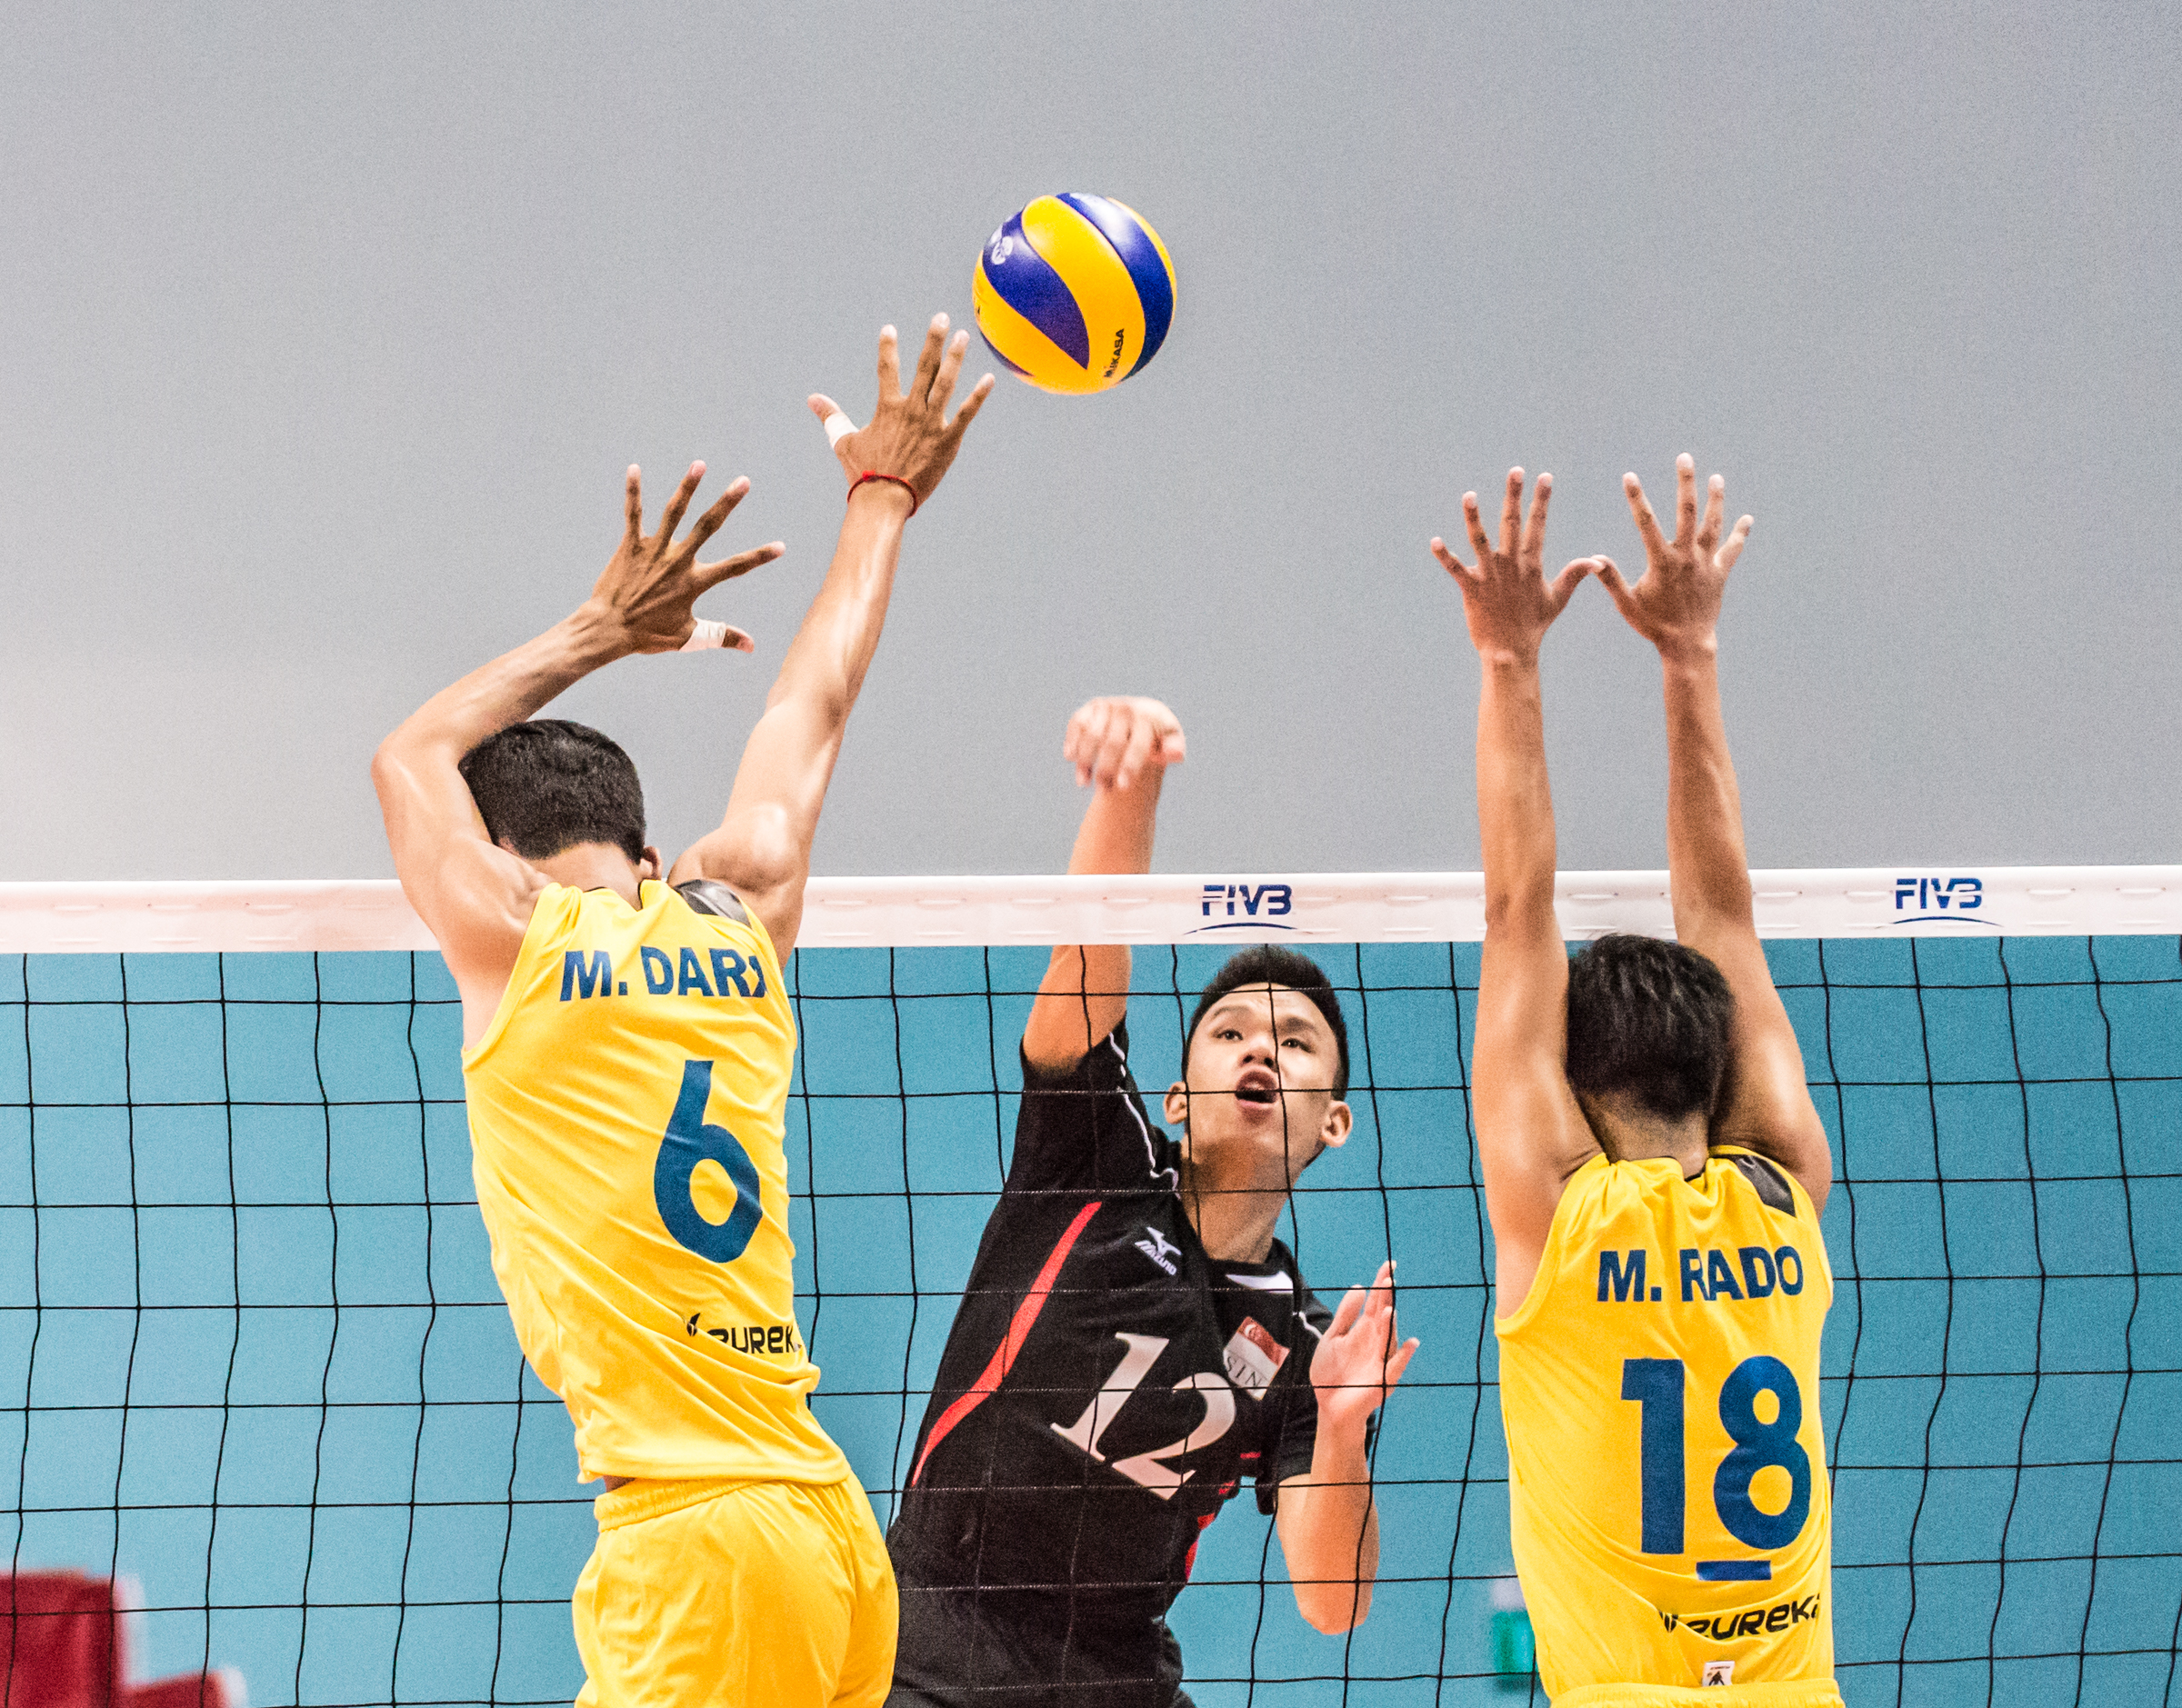 A Team Singapore player spikes the ball past two Cambodian players during a match at the OCBC Arena.